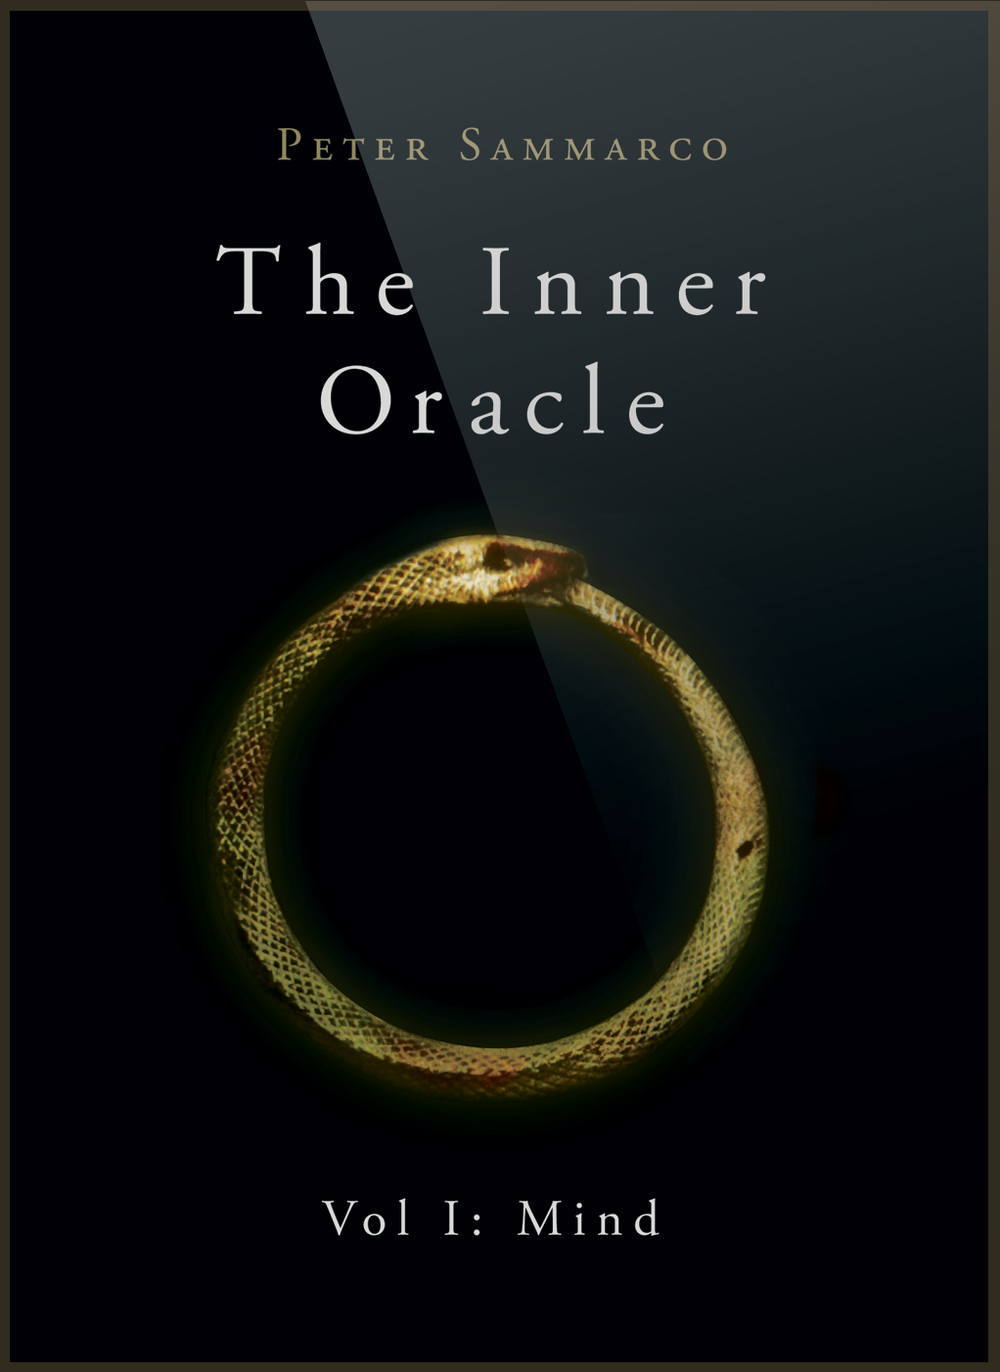 The Inner Oracle - Vol I: Mind.png